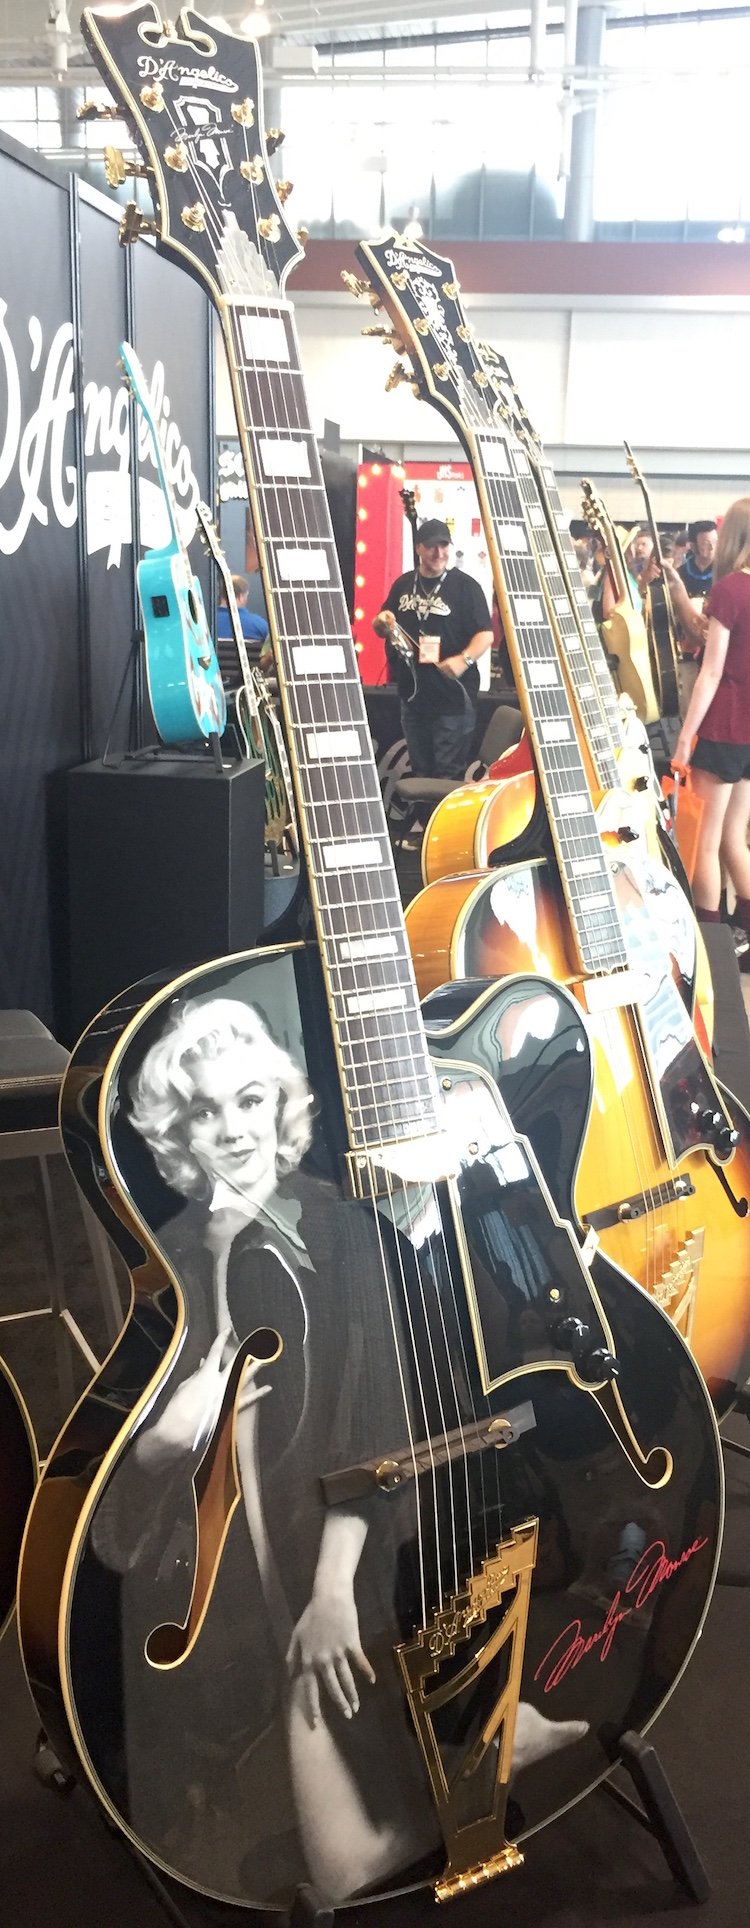 We got a closer look at the D'Angelico EX-59 Marilyn Monroe hollowbody.